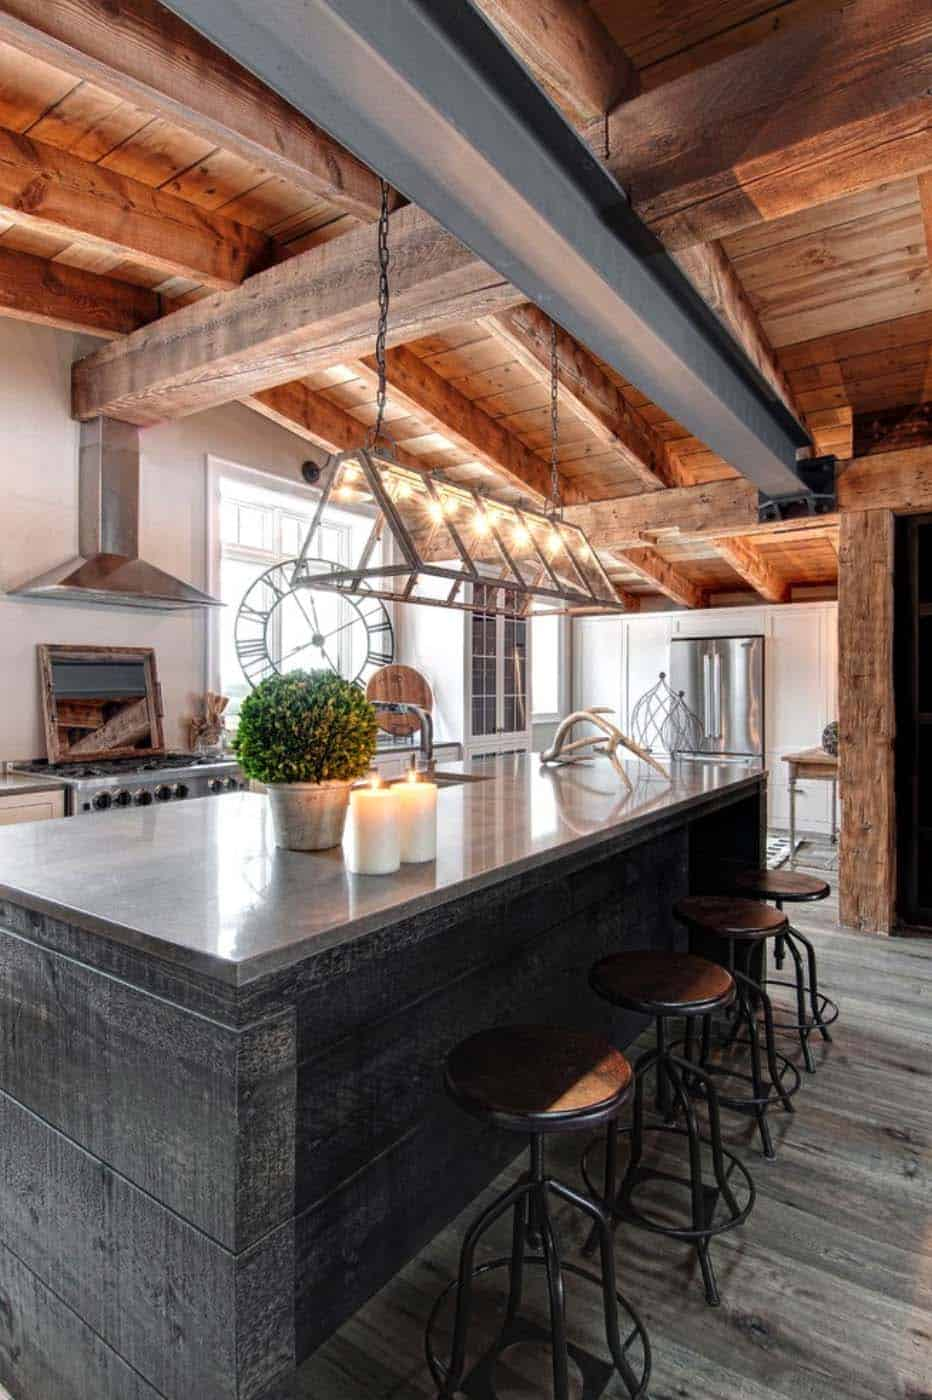 Luxury canadian home reveals splendid rustic modern aesthetic for Modern rustic house plans